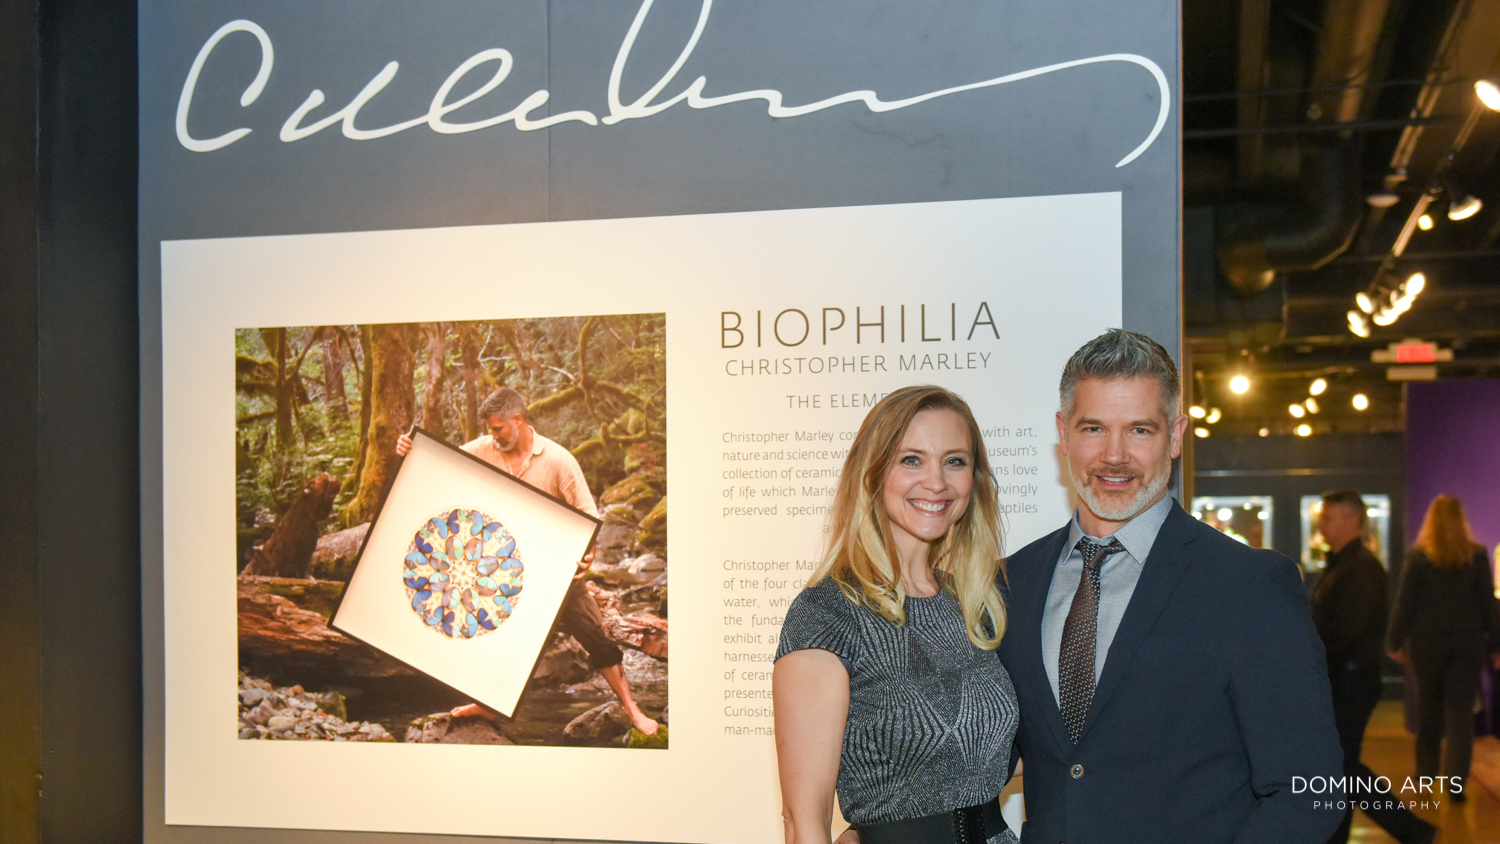 Biophilia by Christopher Marley a dialogue with Art, Nature and Science presented by Gallery of Amazing Things